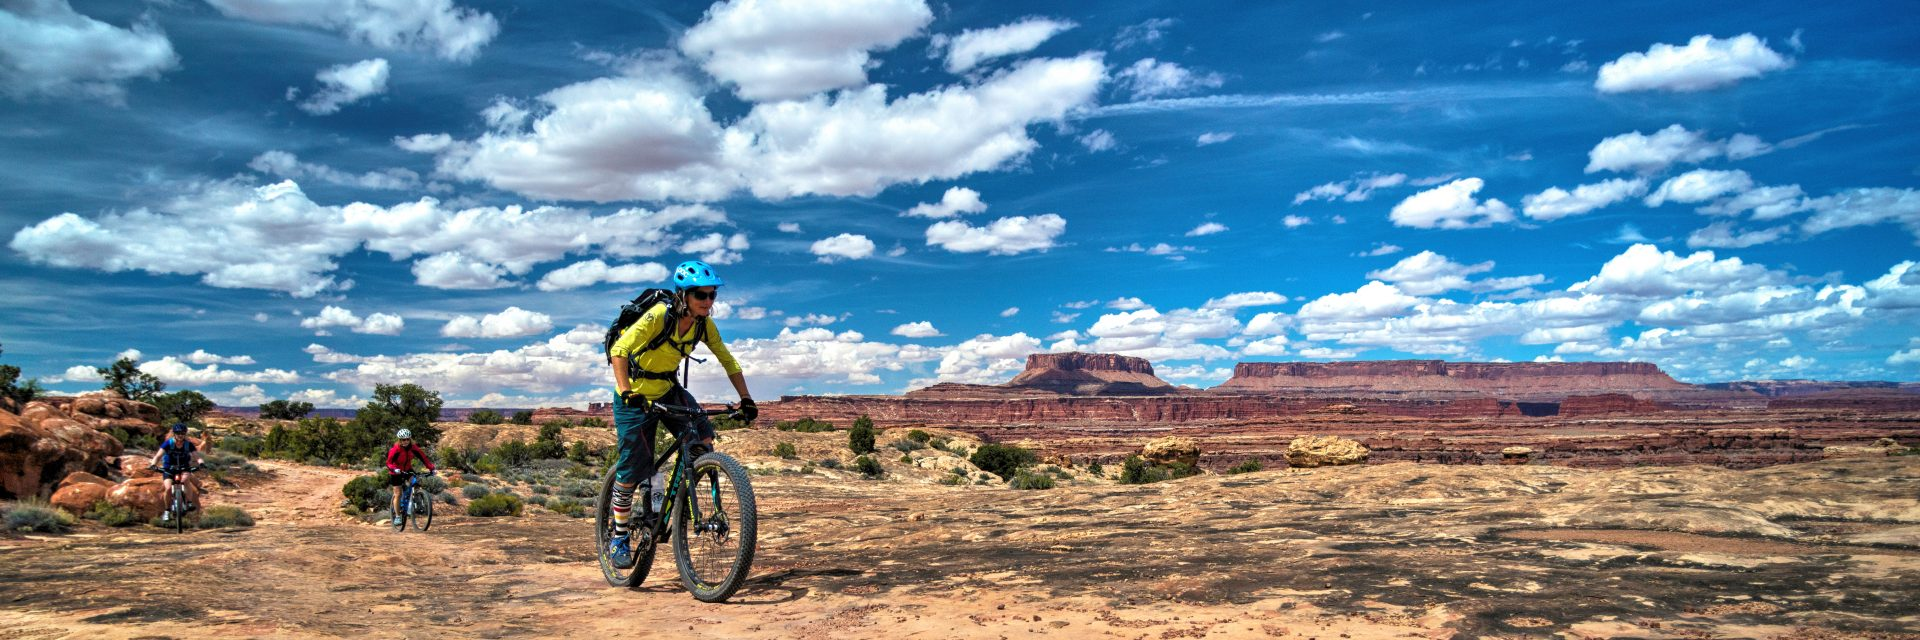 A guide leads a group of mountain bikers on the Colorado River Overlook Road in the Needles District of Canyonlands NP